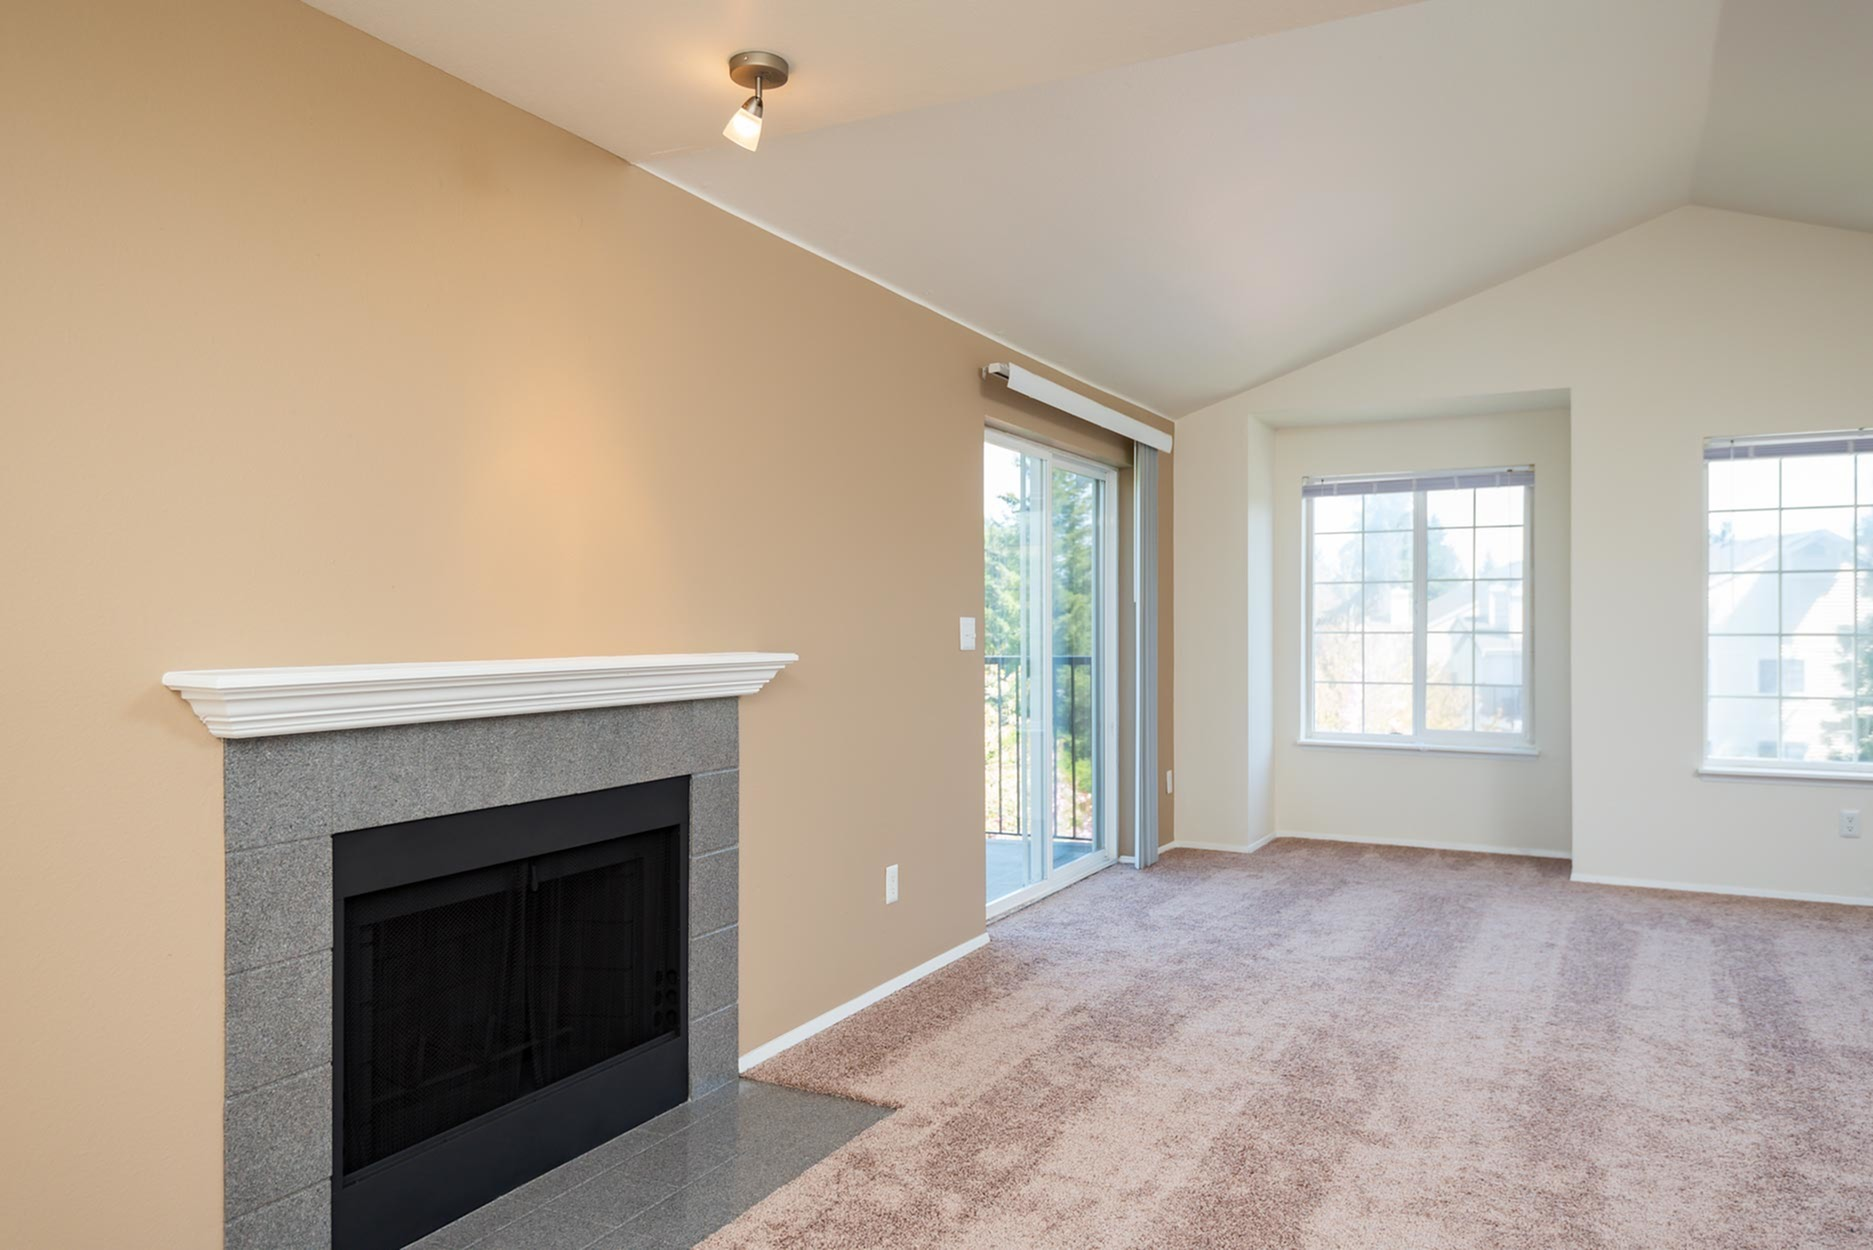 Image of Fireplaces in Select Homes for Murrayhill Park Apartments